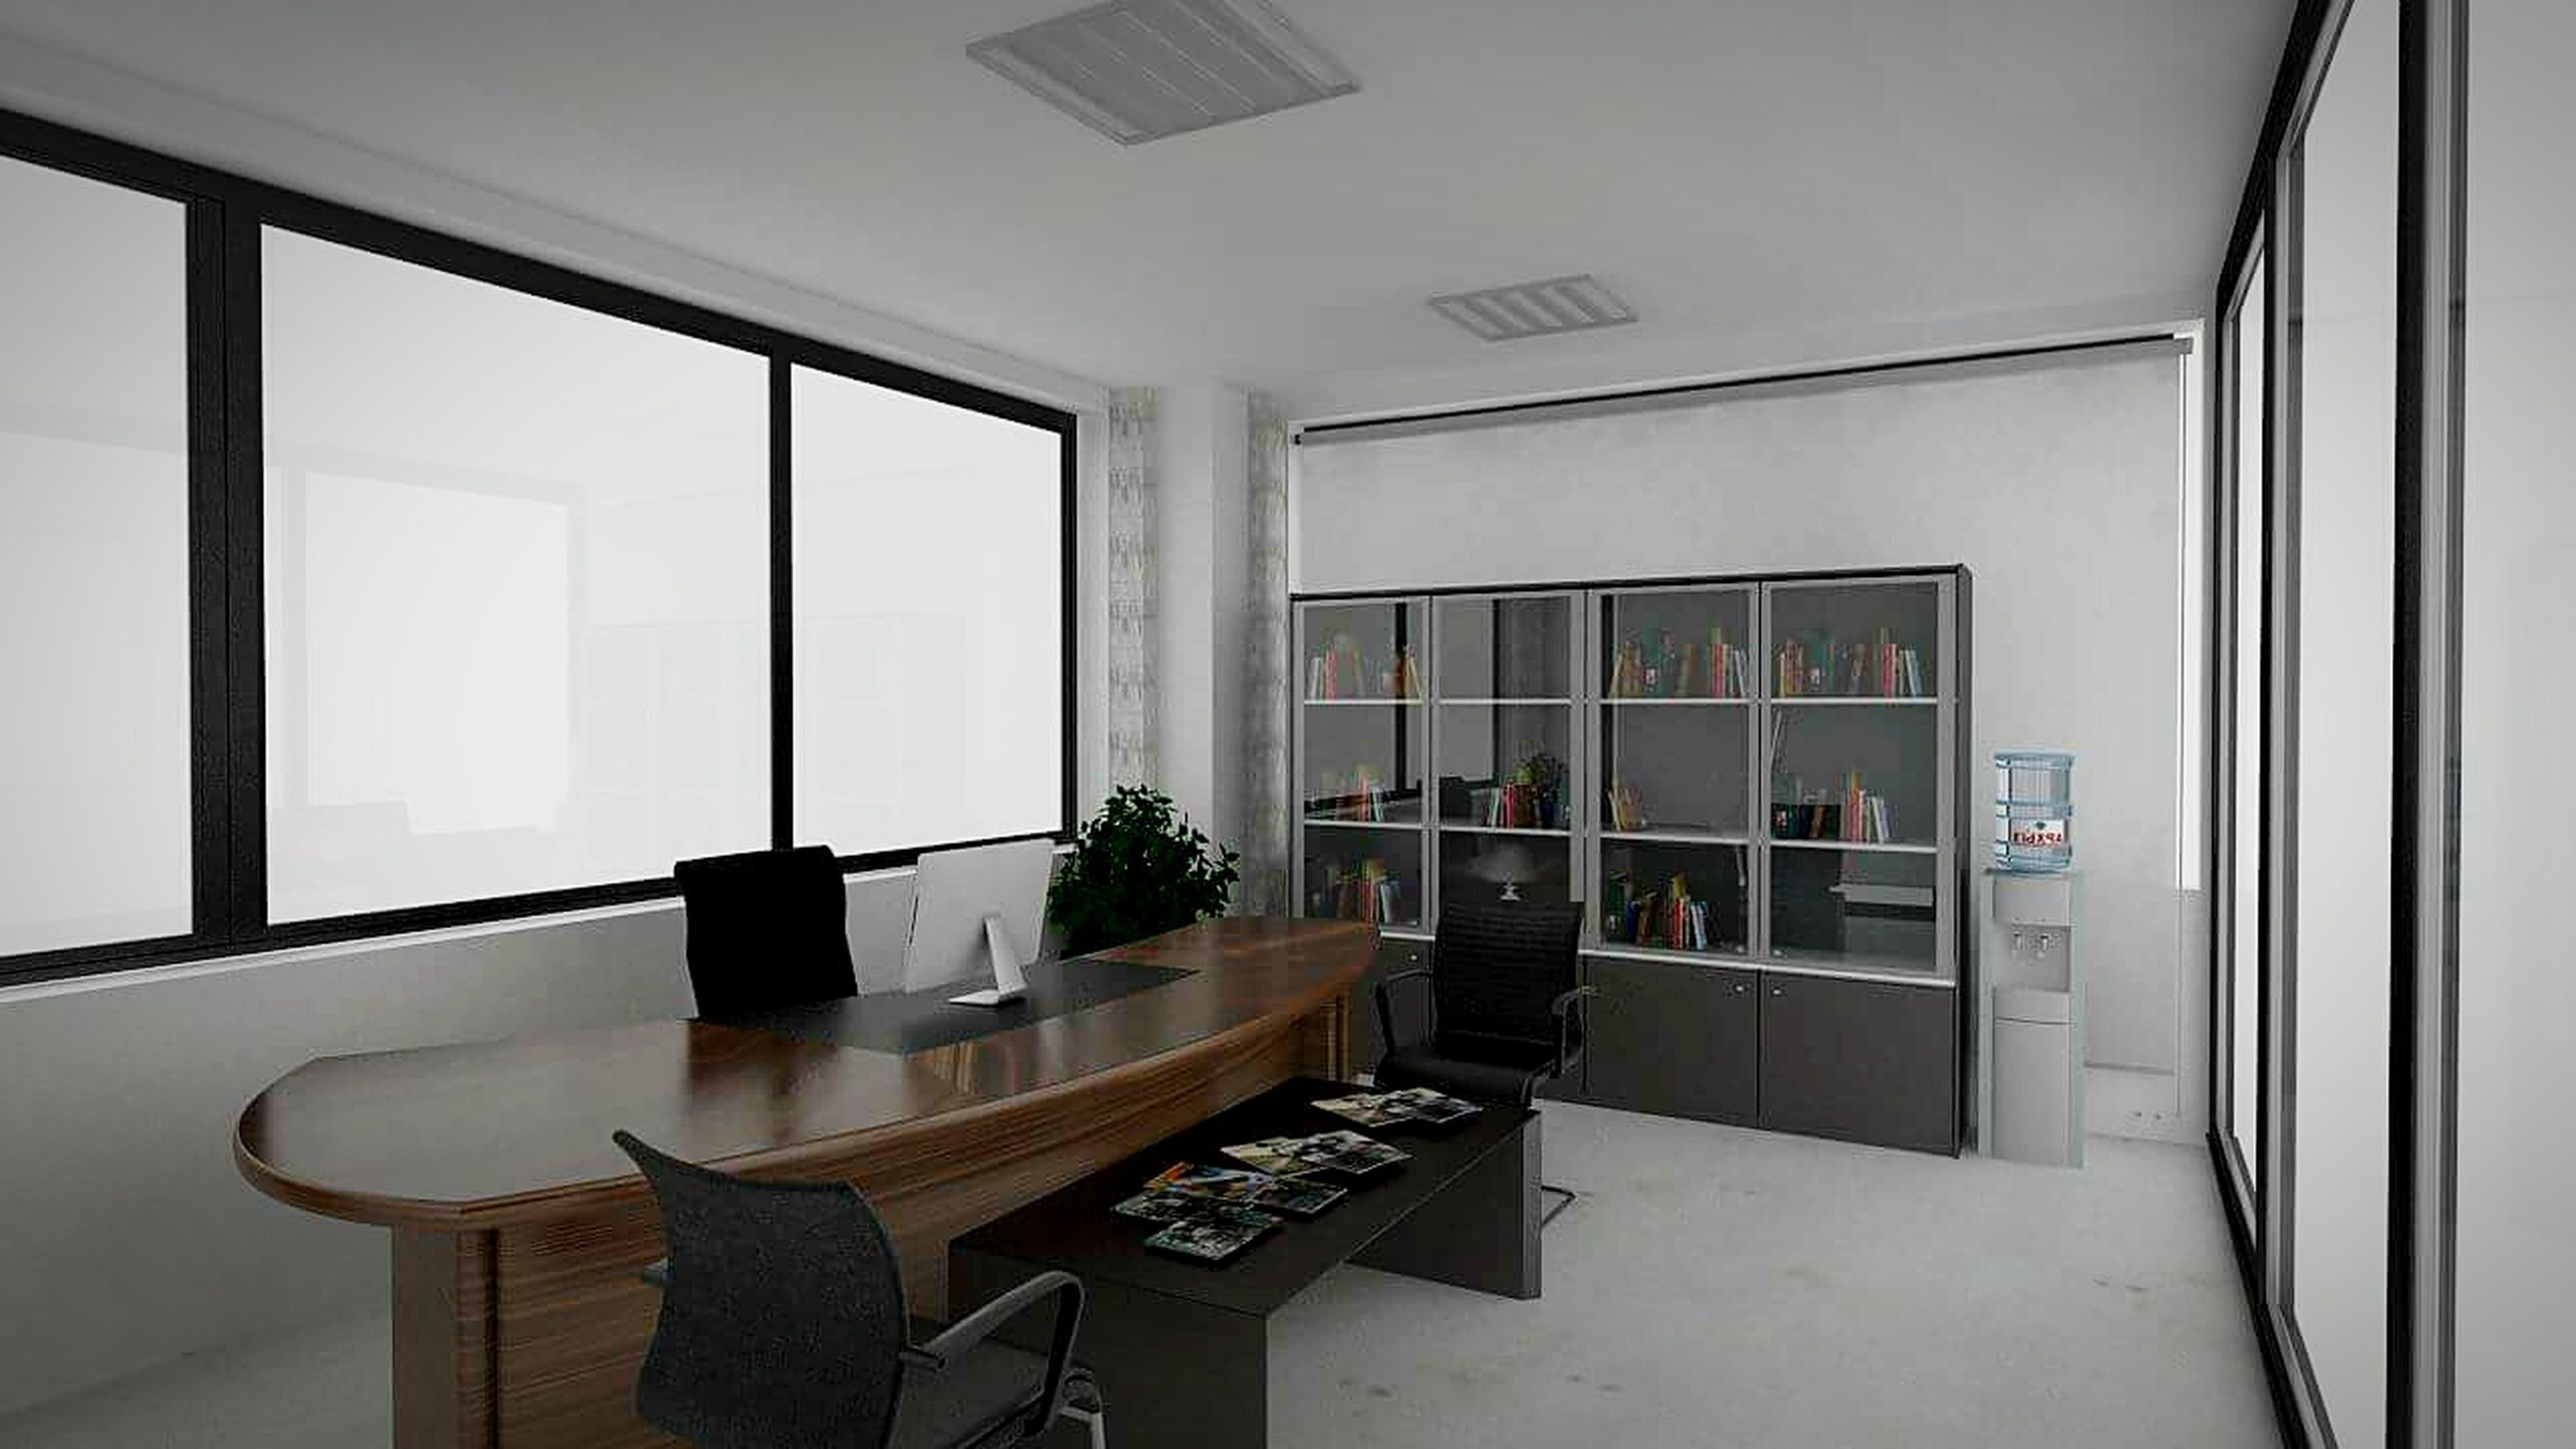 home interior, window, home showcase interior, indoors, architecture, luxury, house, apartment, no people, residential building, modern, living room, business finance and industry, table, domestic room, domestic life, sliding door, day